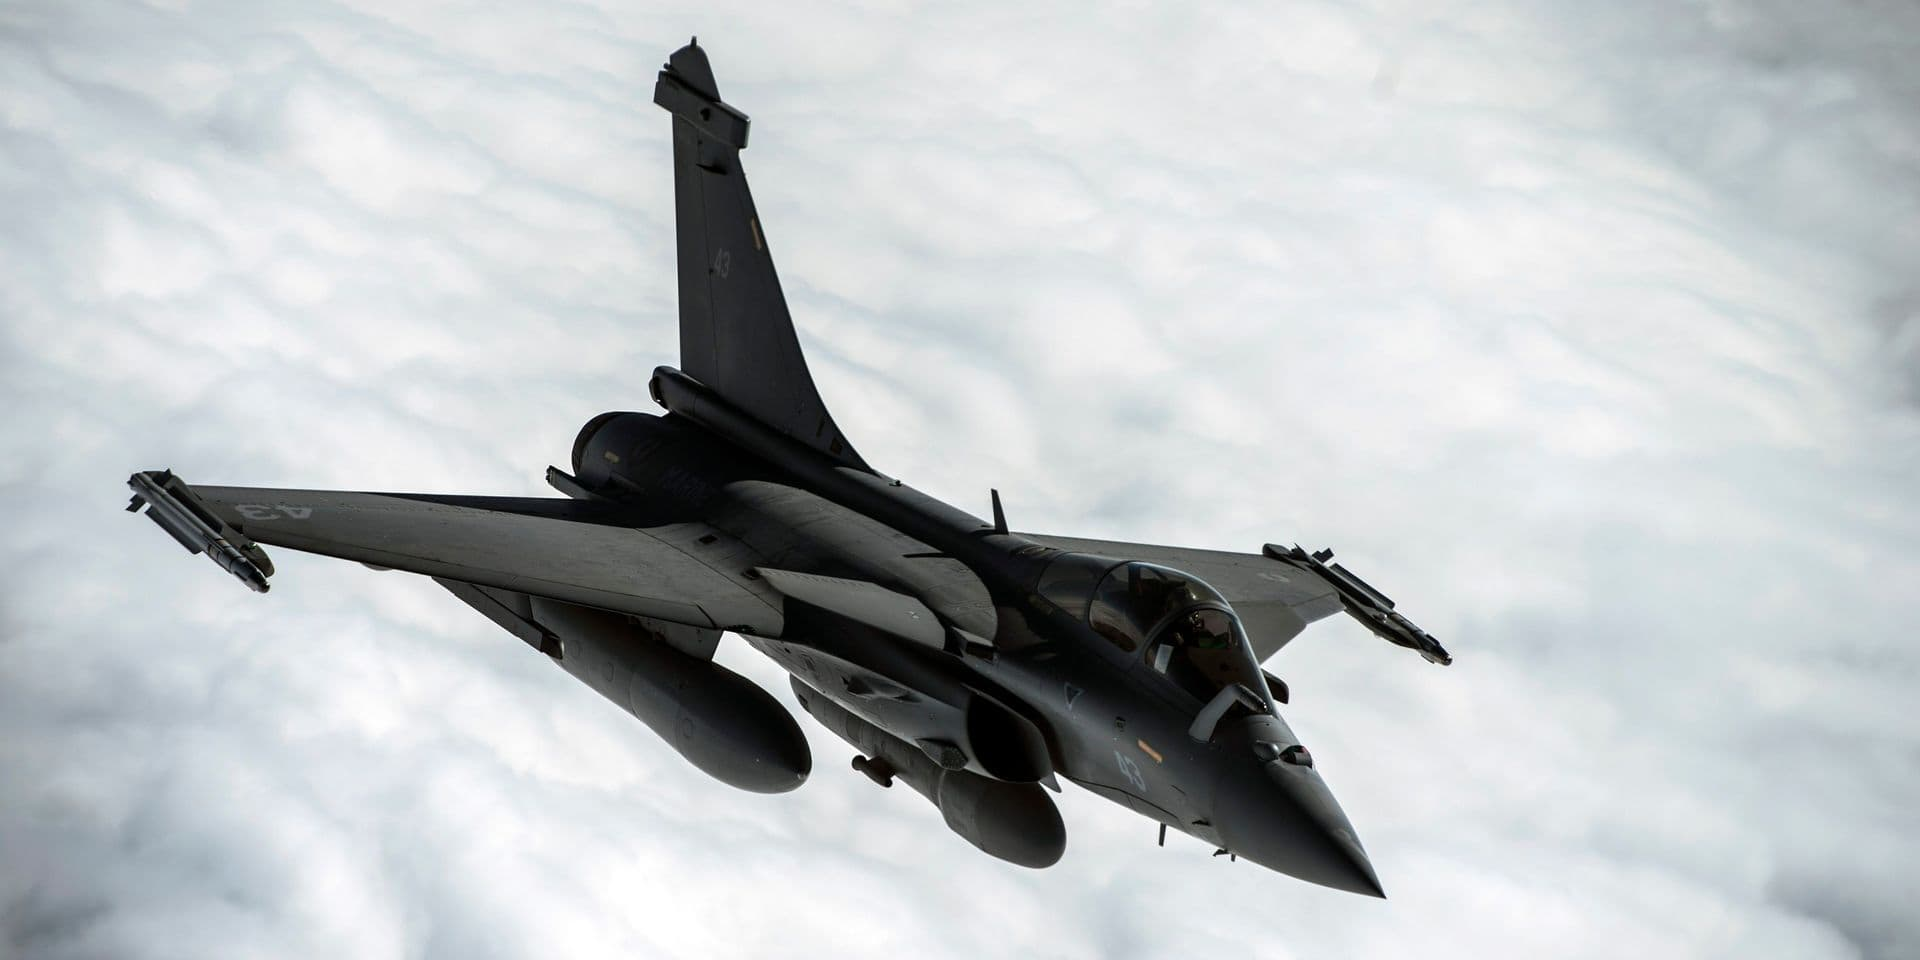 Les Rafale français qui bombardent ISIS sont ravitaillés en vol par l'US Air Force, le 8 janvier 2016. A French F-2 Rafale flies over Iraq in support of Operation Inherent Resolve, Jan. 8, 2016. OIR is the coalition intervention against the Islamic State of Iraq and the Levant. Reporters / Bpresse